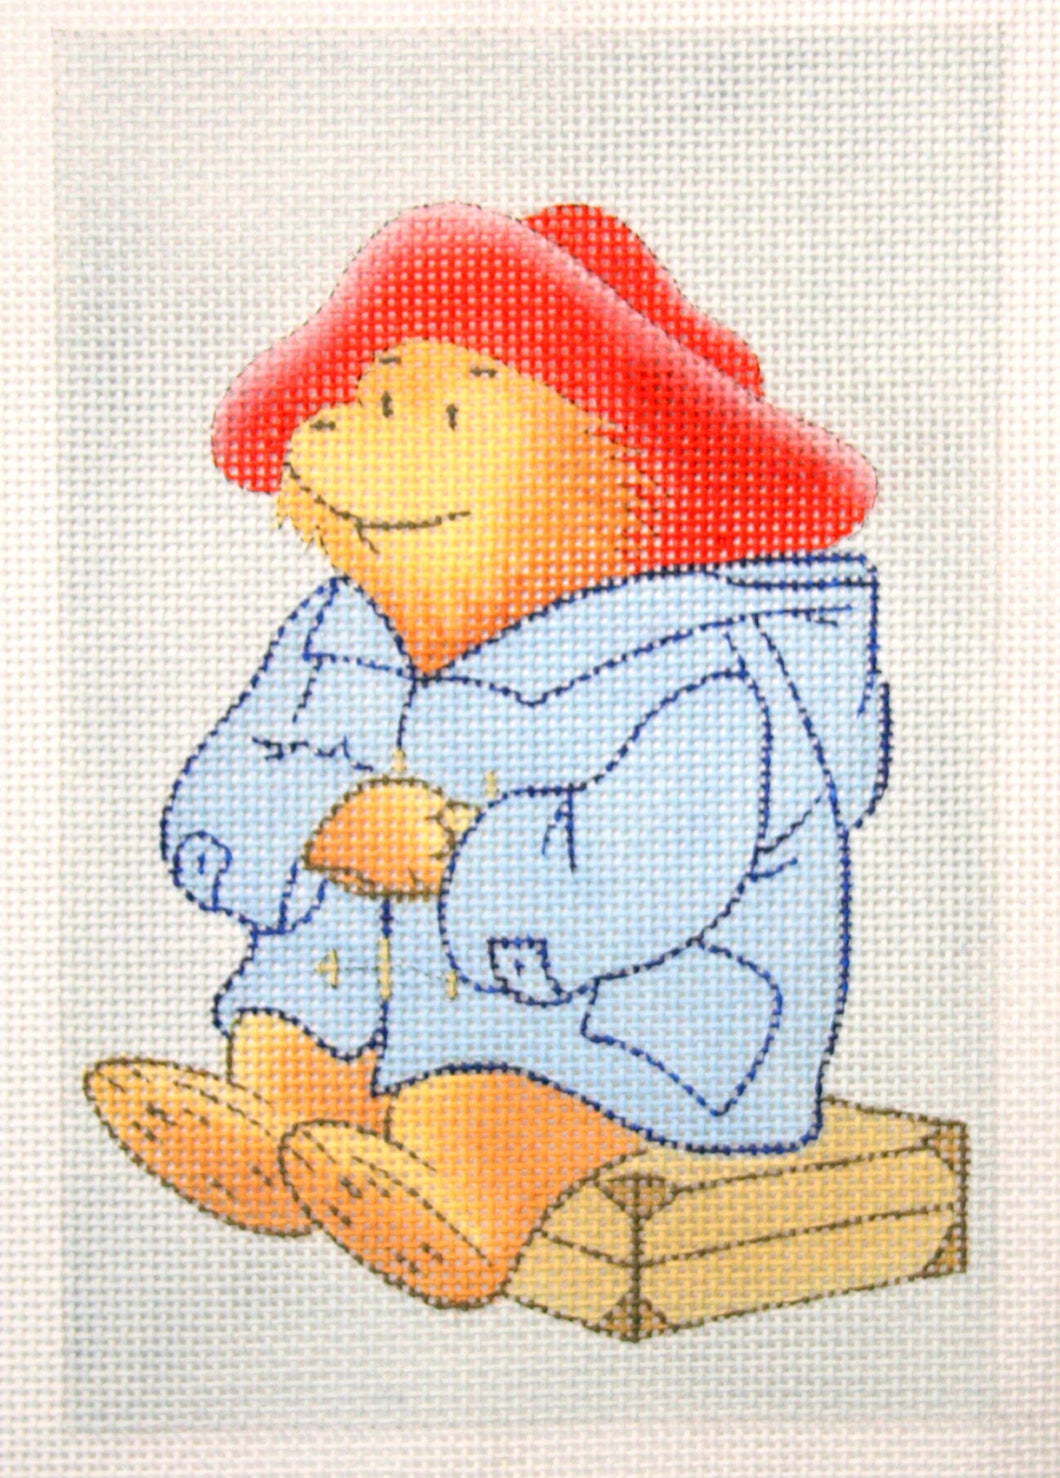 Paddington on Suitcase